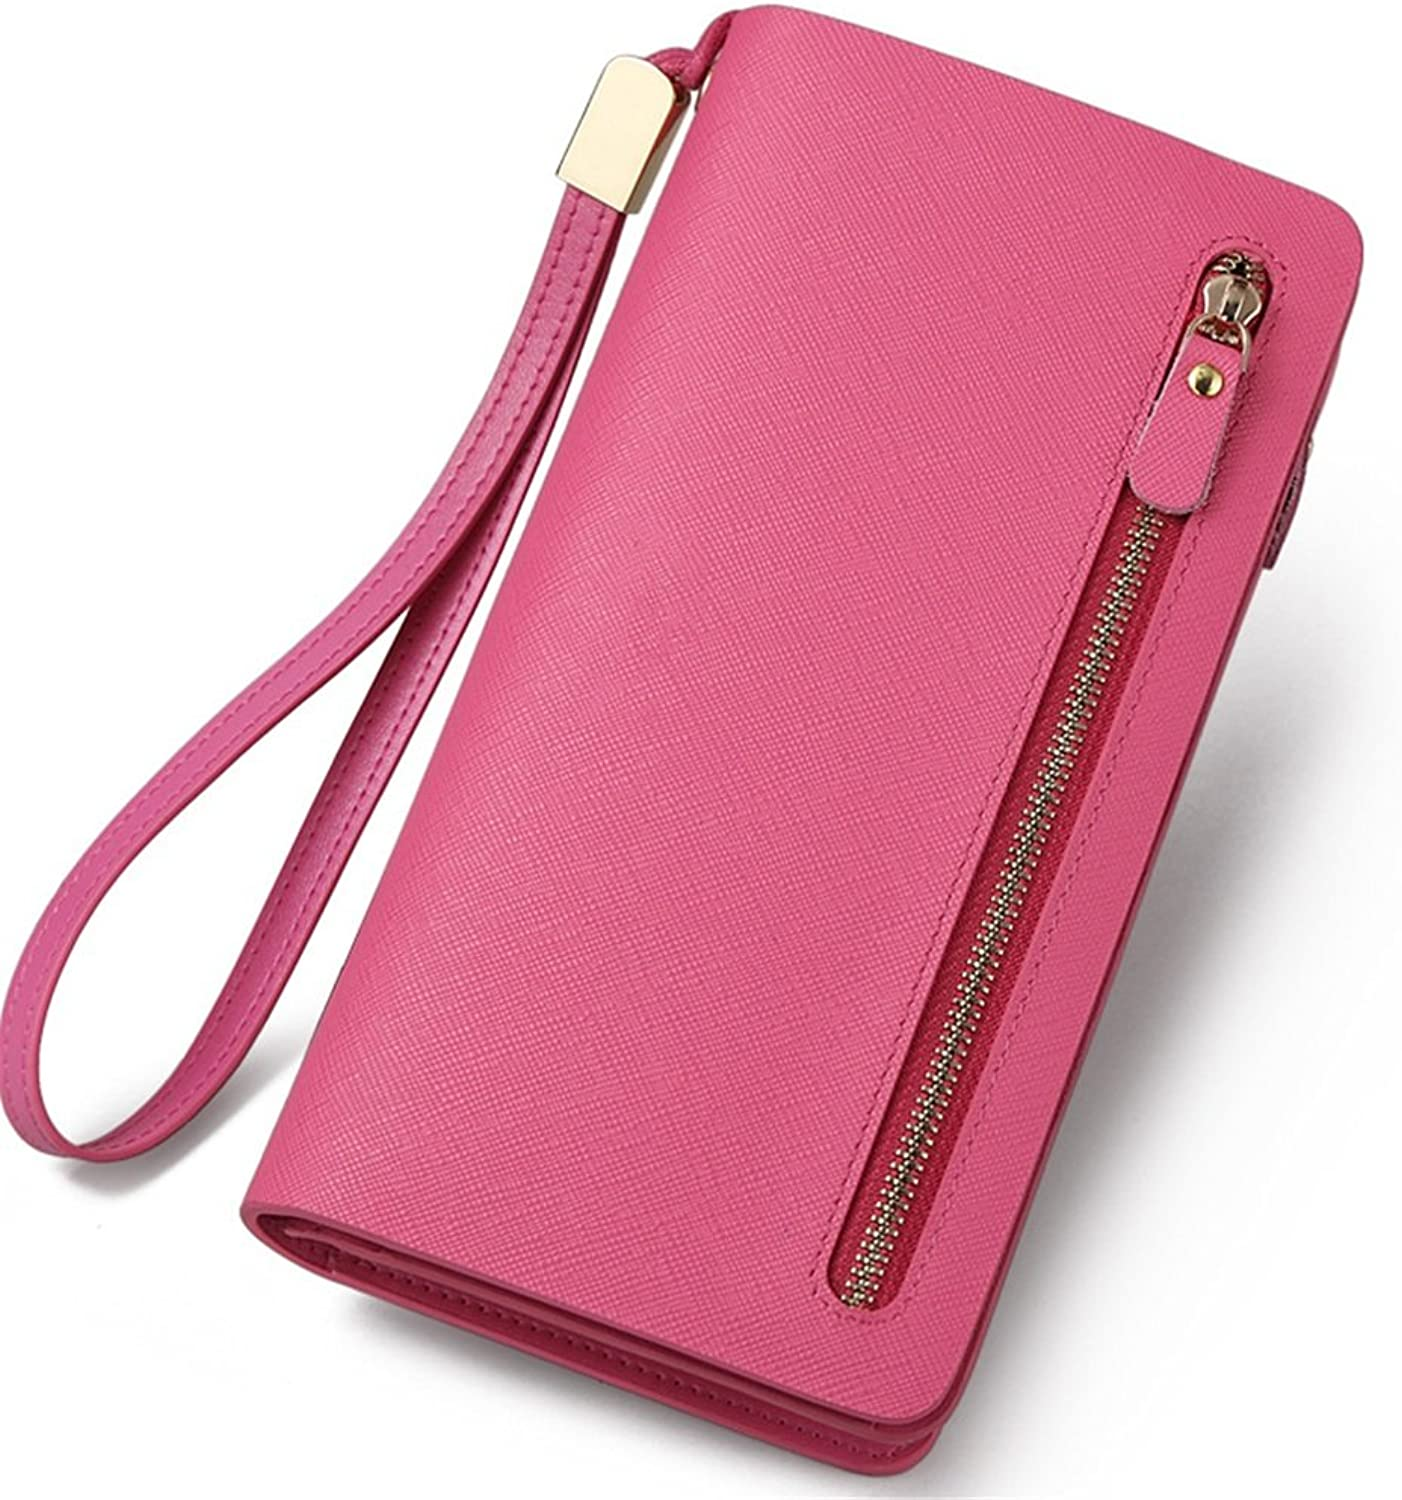 Women's Wallet Women's Wallet Women's Long Leather Zipper Purse Pink pink Red Dark bluee Multicolor Choice Practical Personality Splicing Large Capacity Wallet (color   Red)